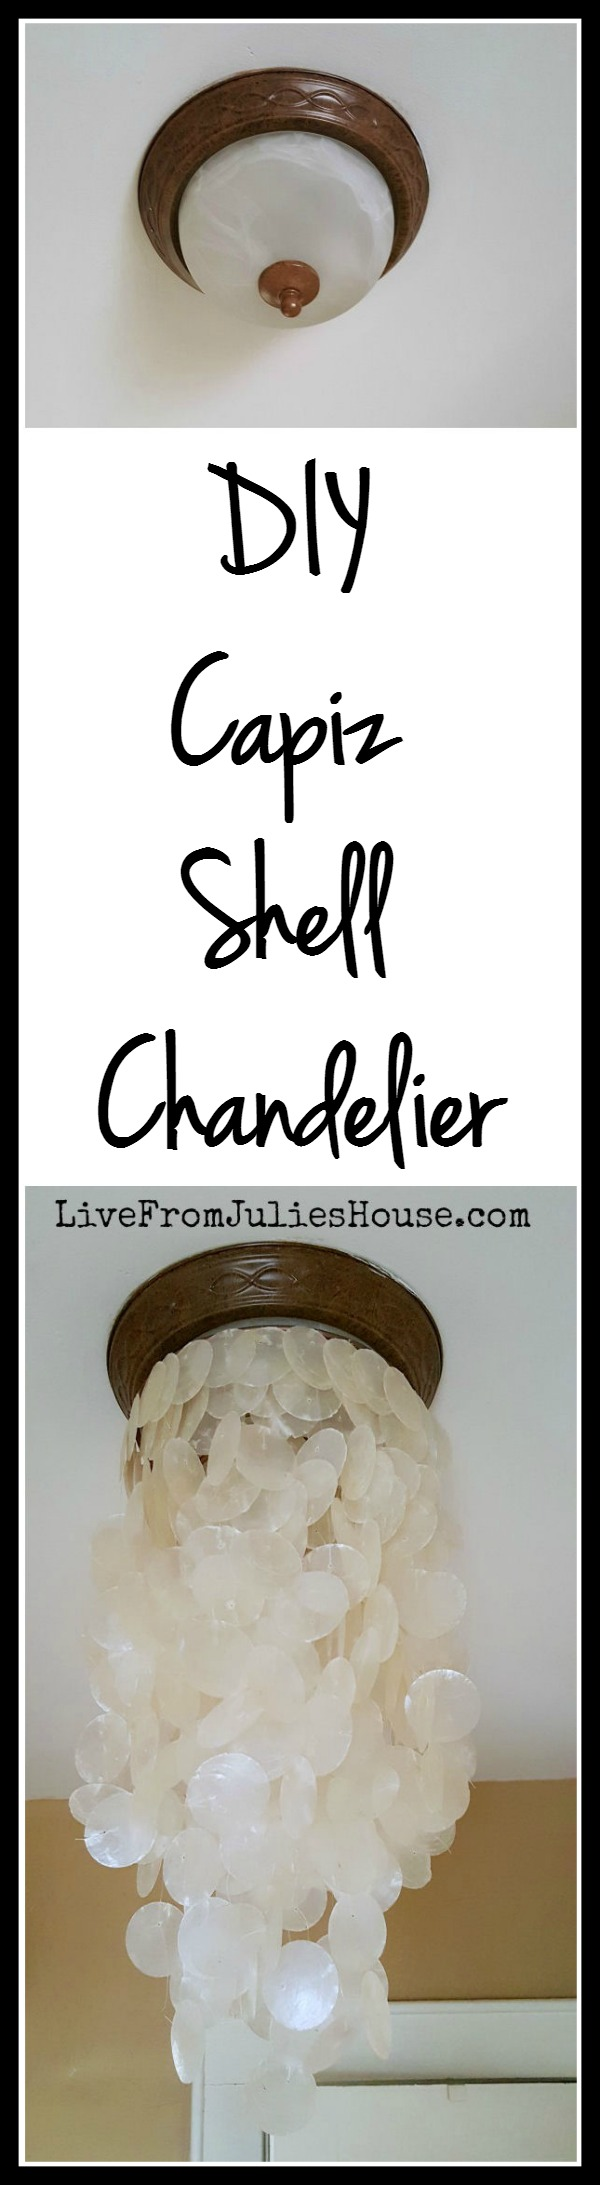 DIY Capiz Shell Chandelier Tutorial - Turn your not-so-awesome boob light into a super awesome DIY Capiz shell chandelier